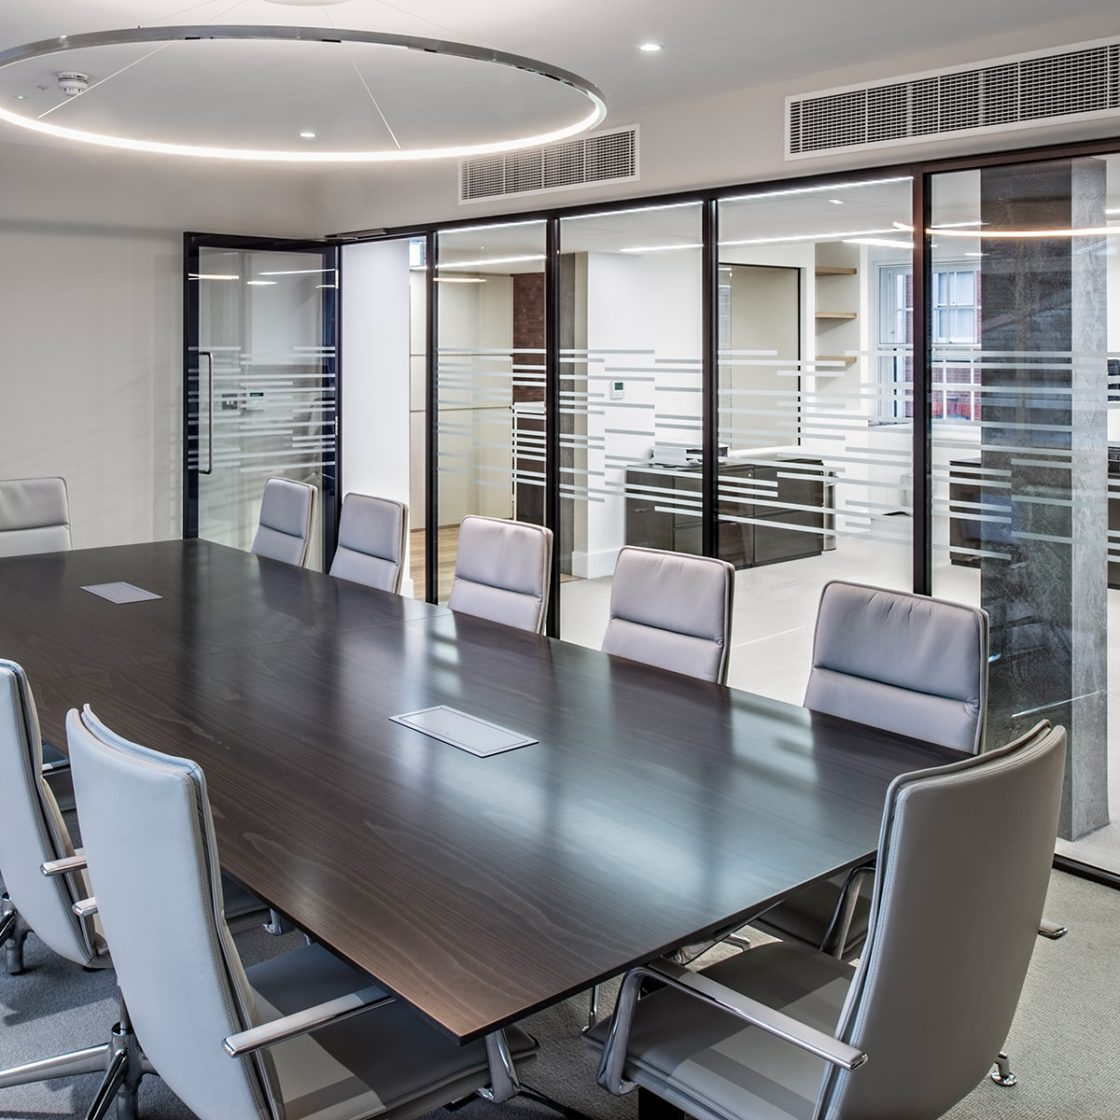 Board Room | Office glazing | Single Glazed | Relocatable | Demountable